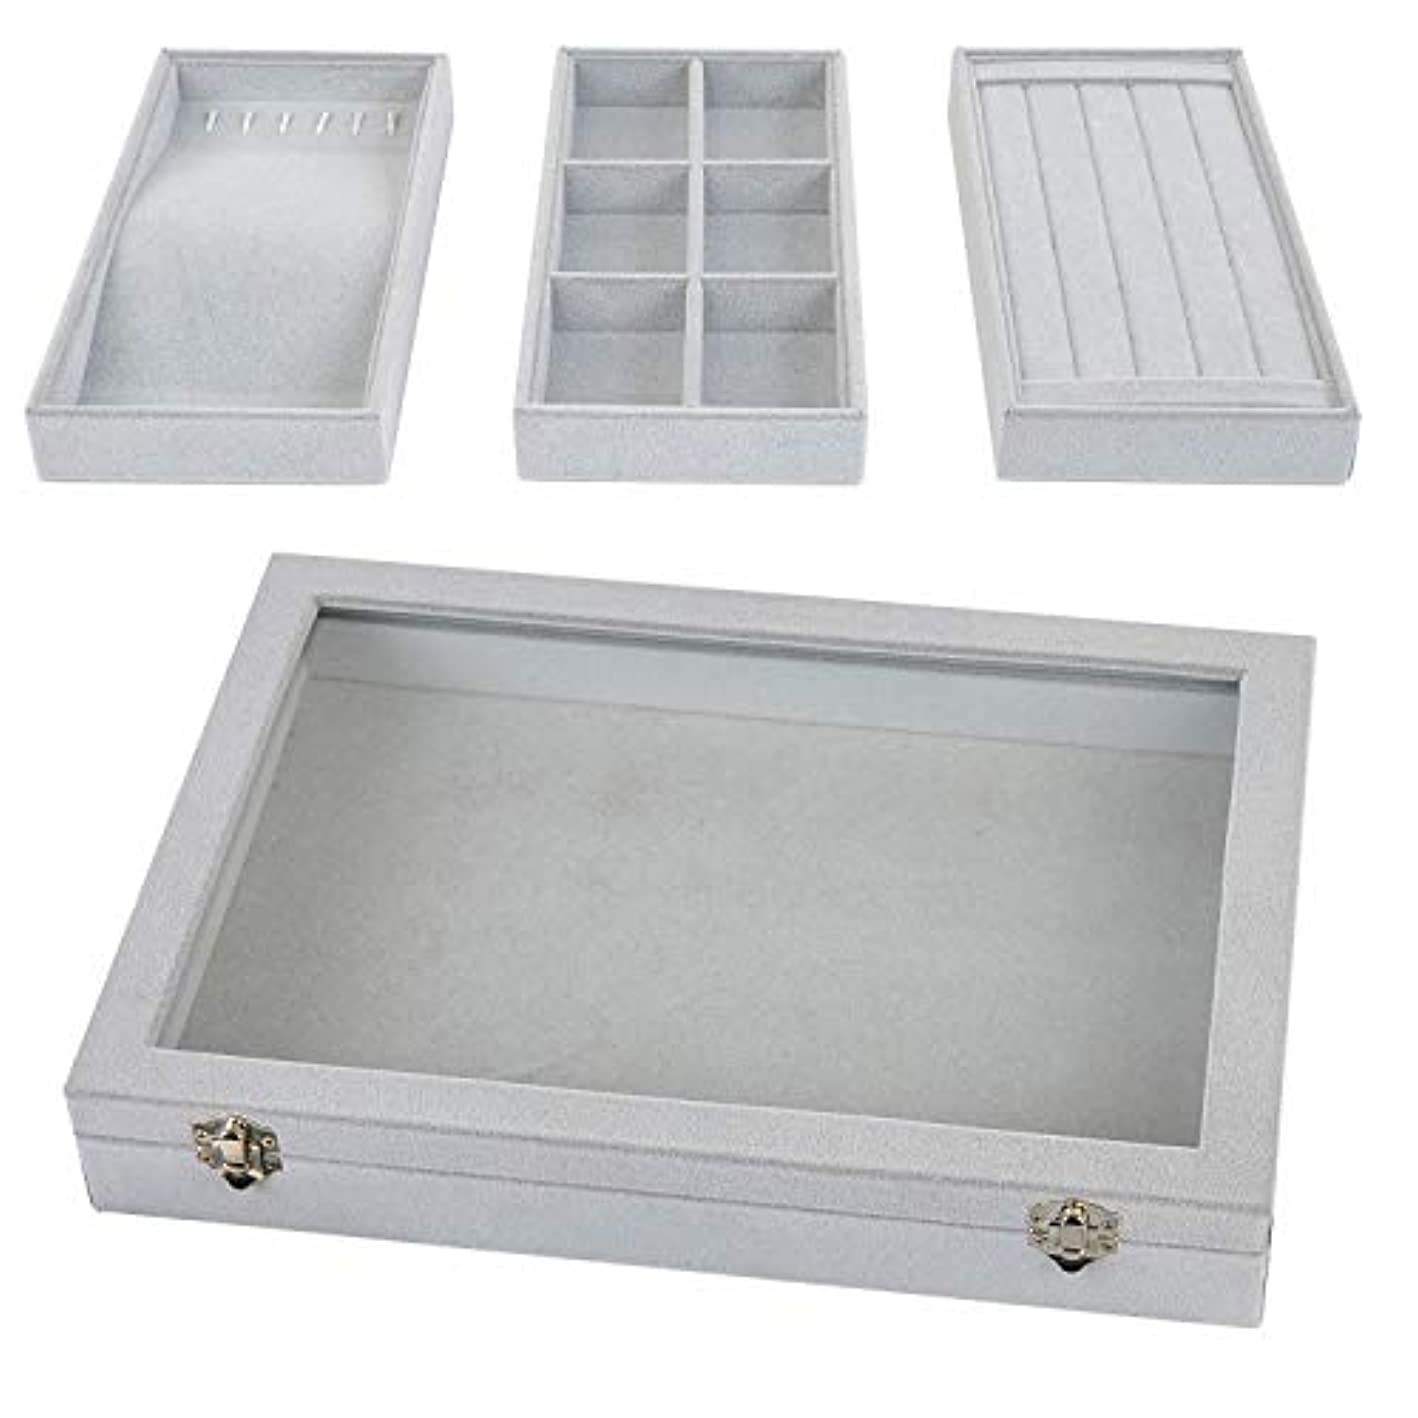 MILIJIA Stackable Jewelry Tray with Glass Lid, Drawer Insert Display Show Case, Dresser Organizer for Ring Stud, Necklace Holder Storage Box Chest, Light Grey